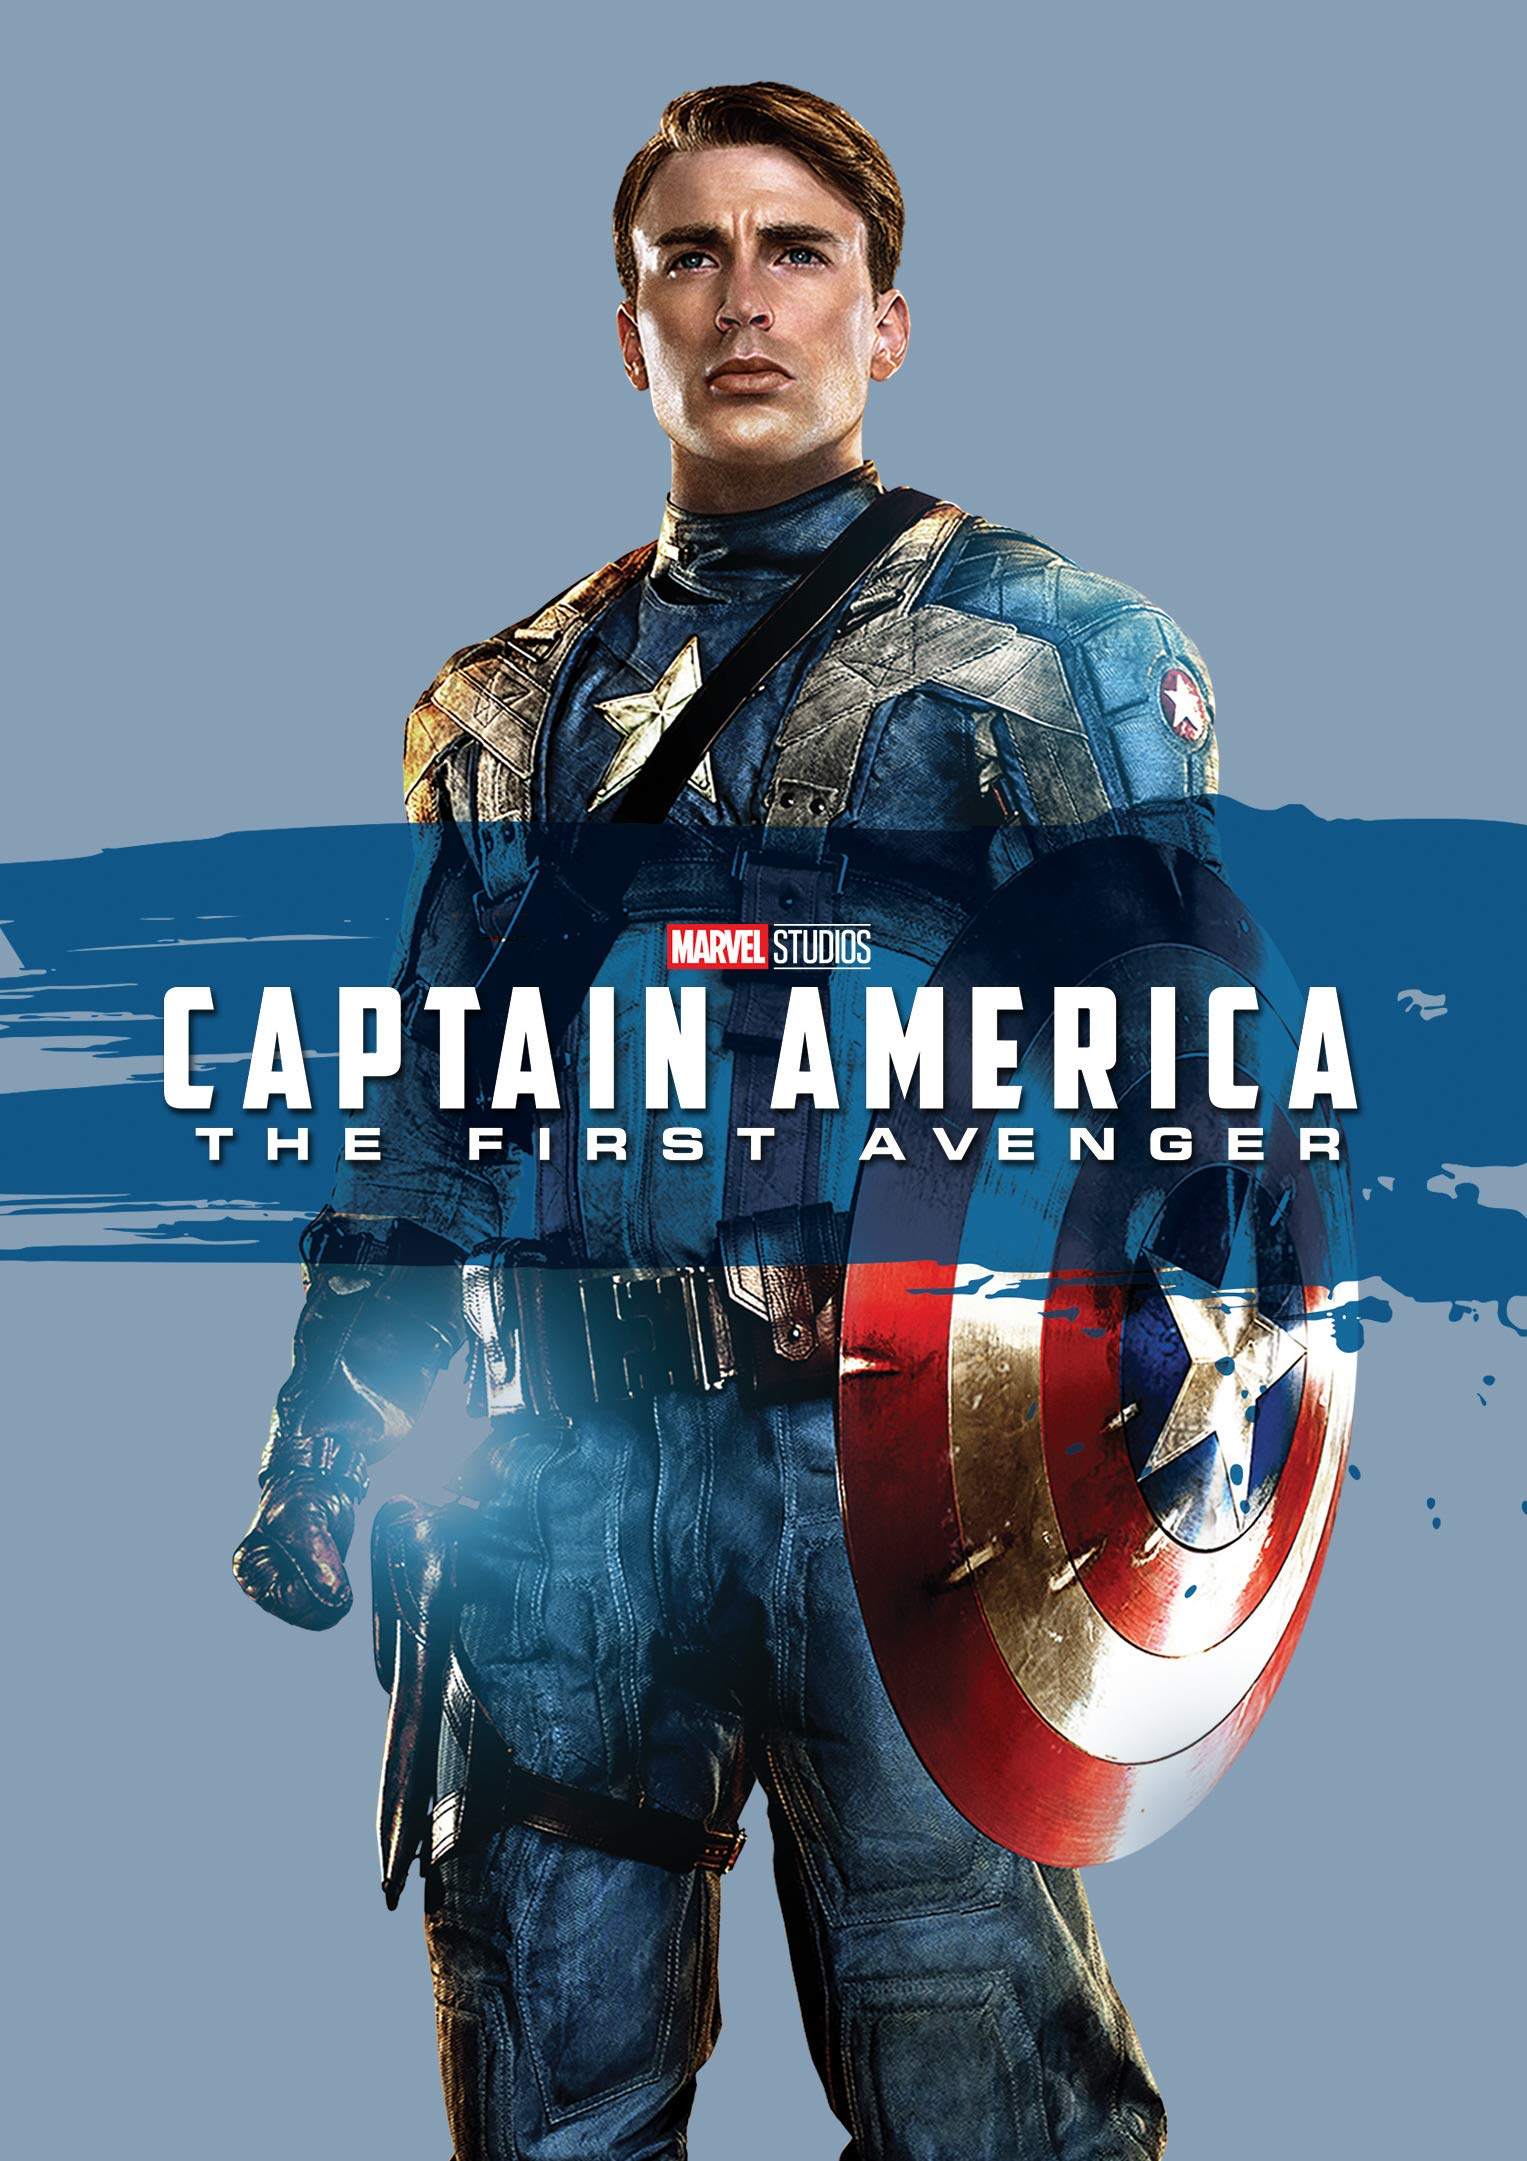 Amazon co uk: Watch Captain America: The First Avenger | Prime Video